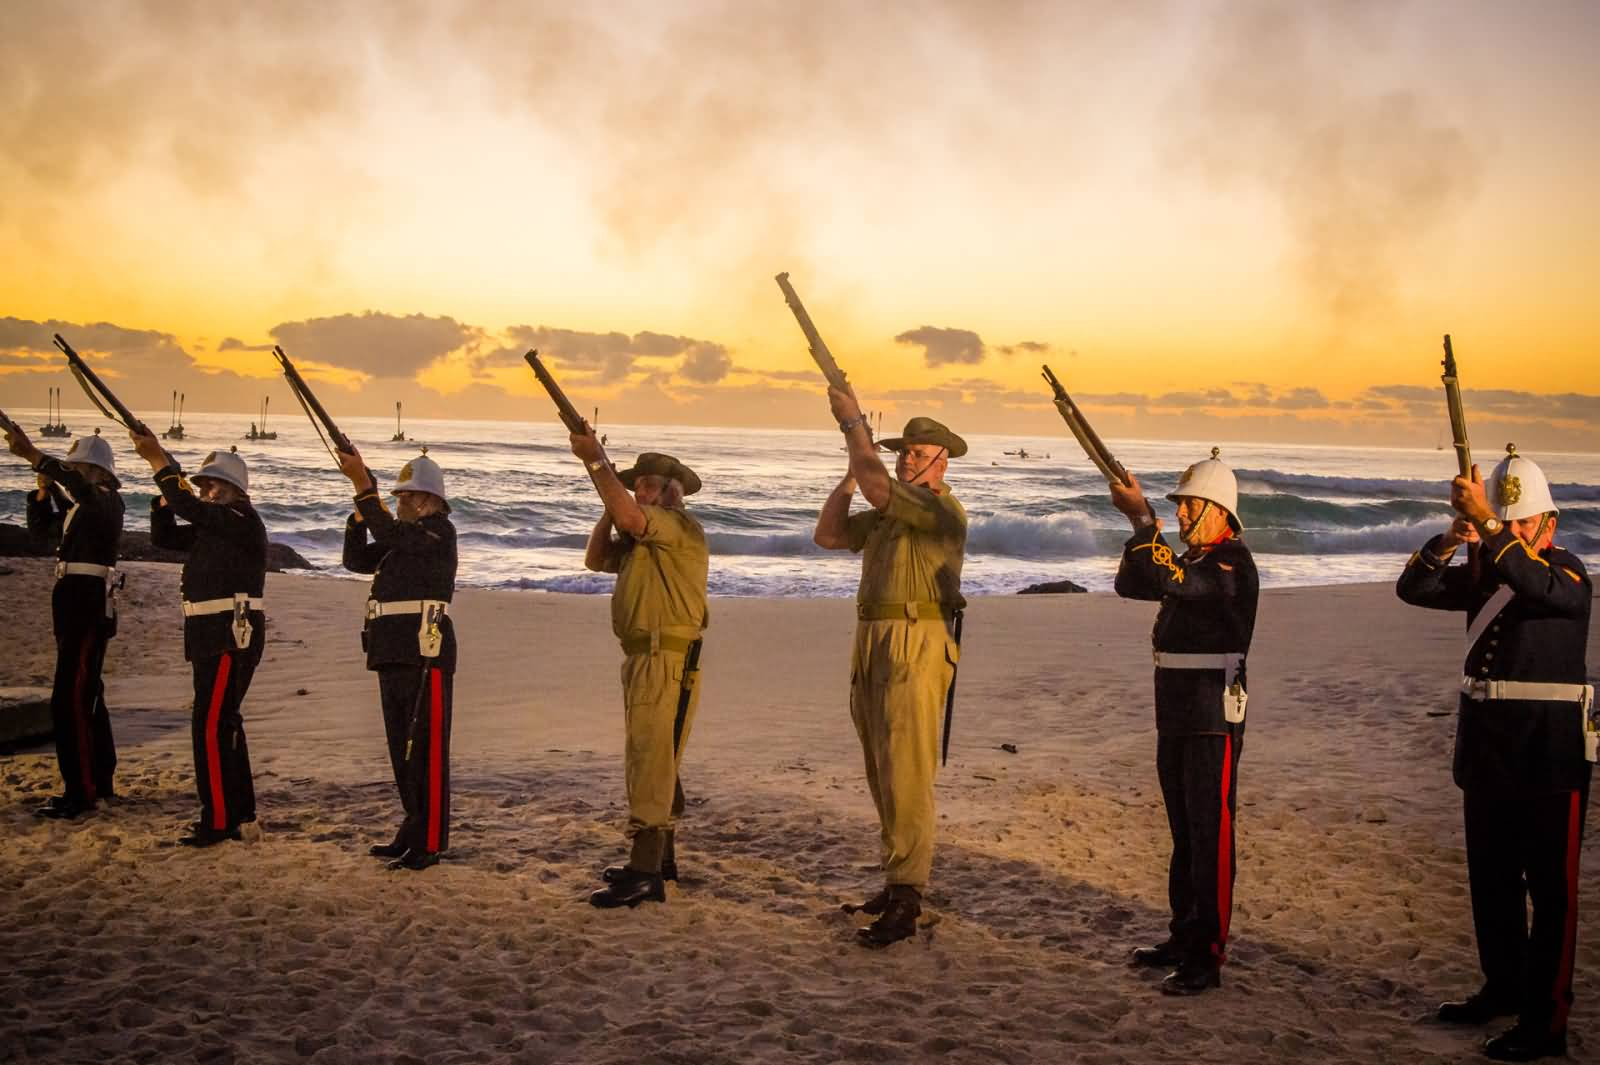 anzac day - photo #21